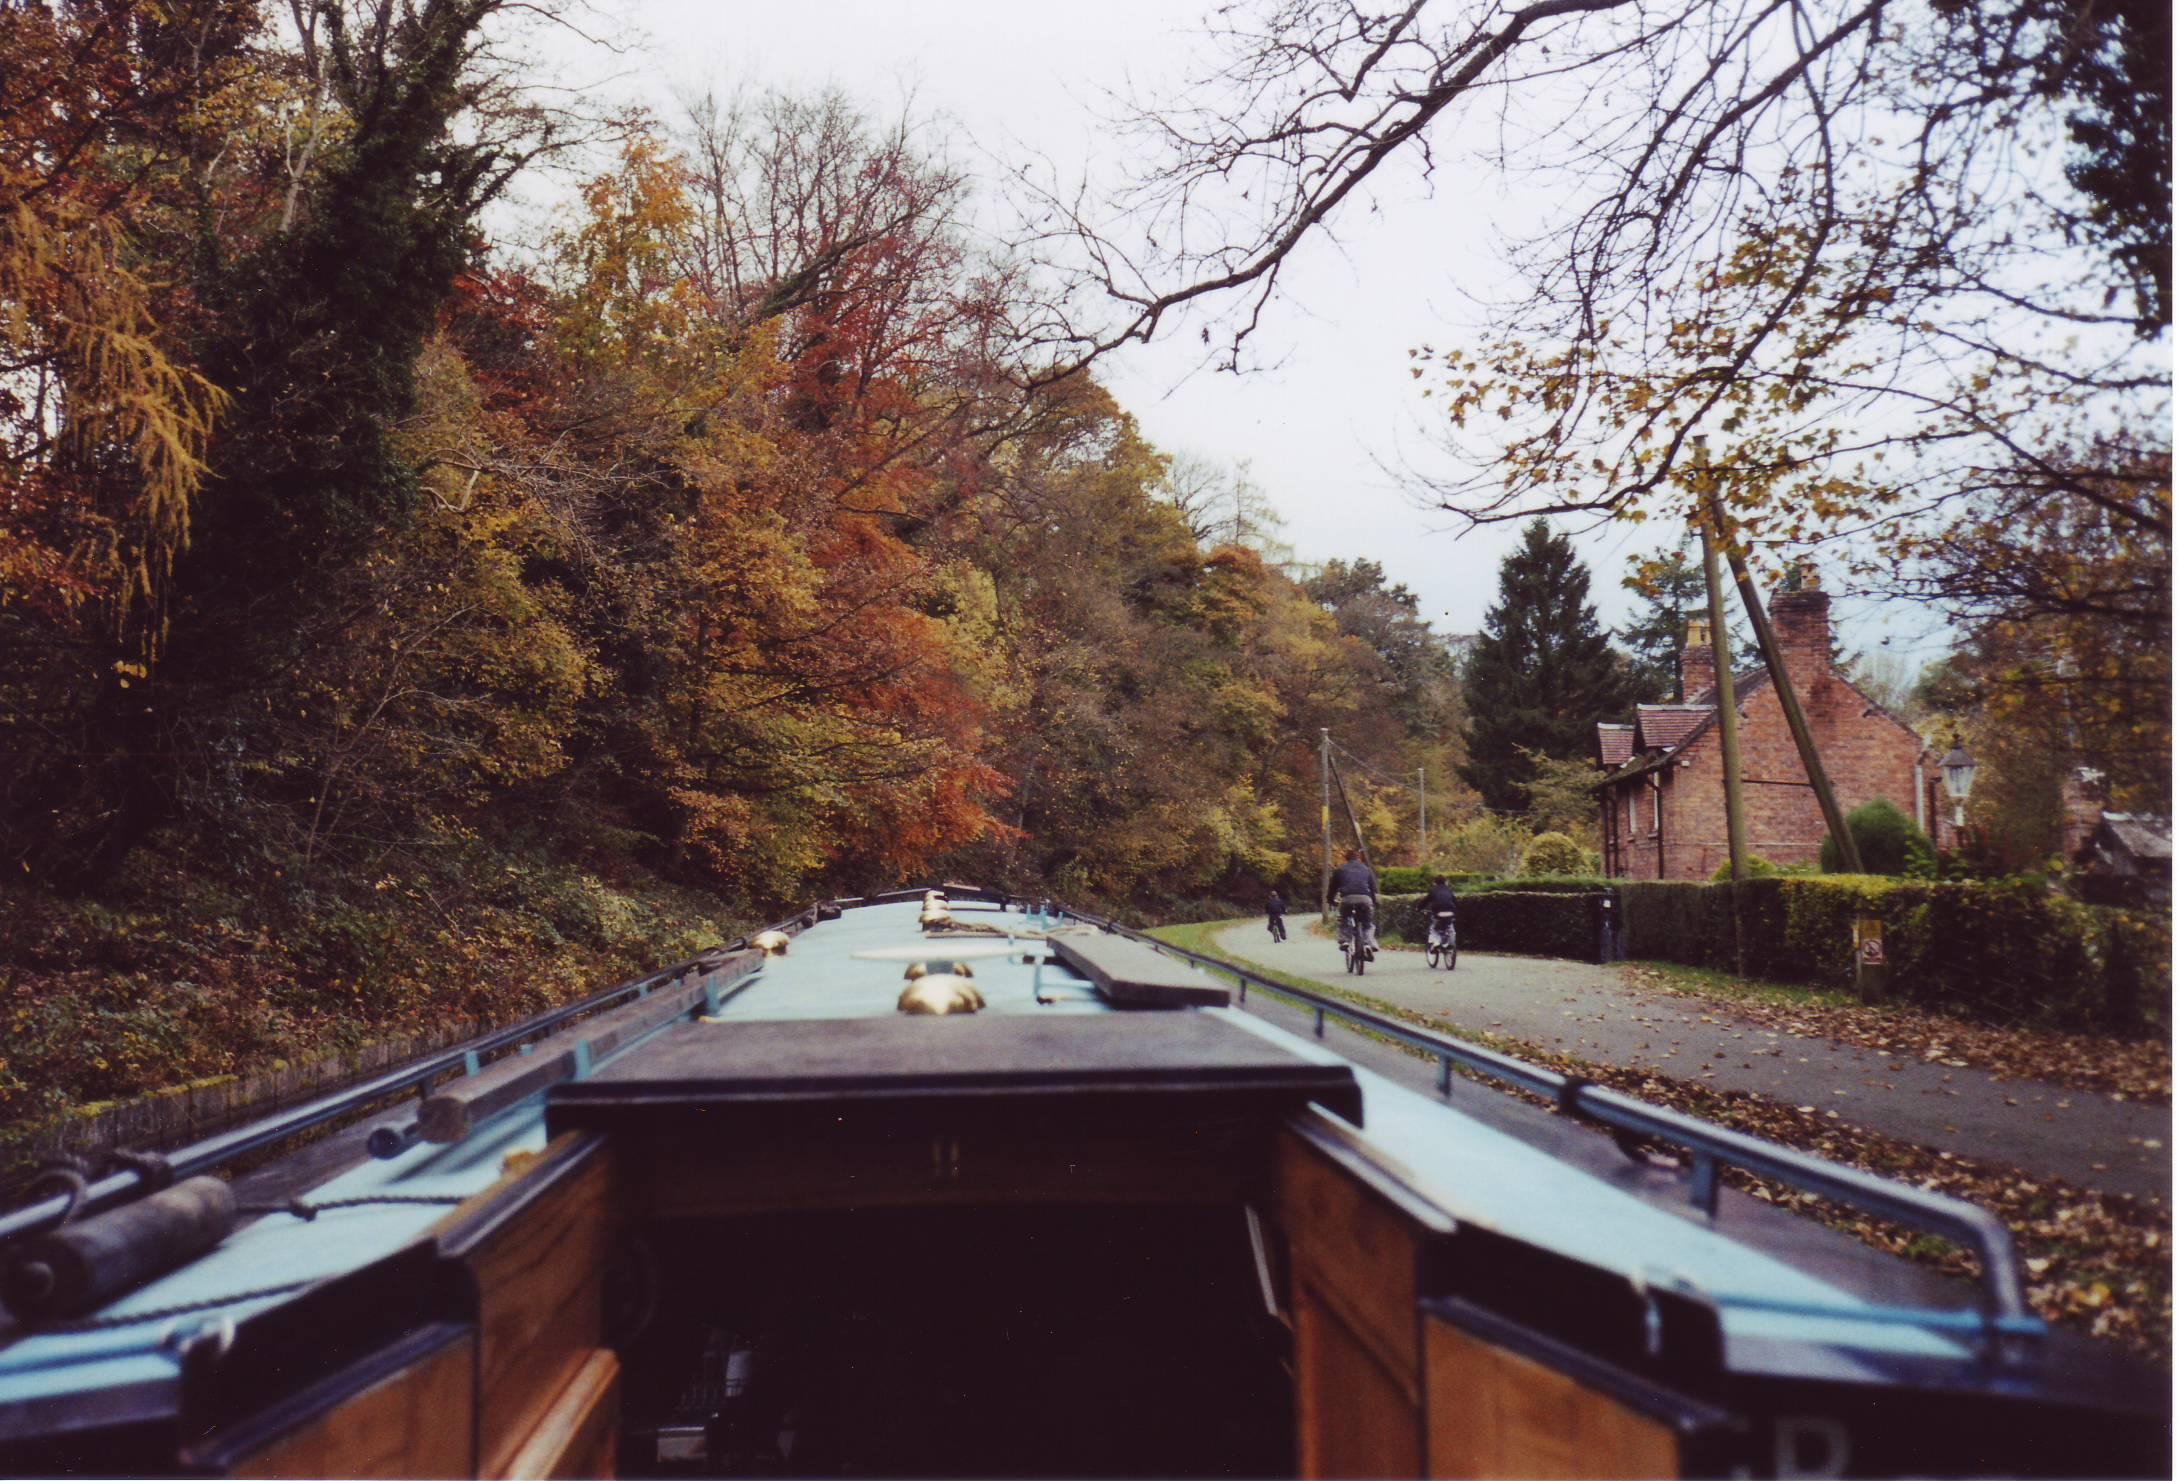 Narrowboat herfstkleuren